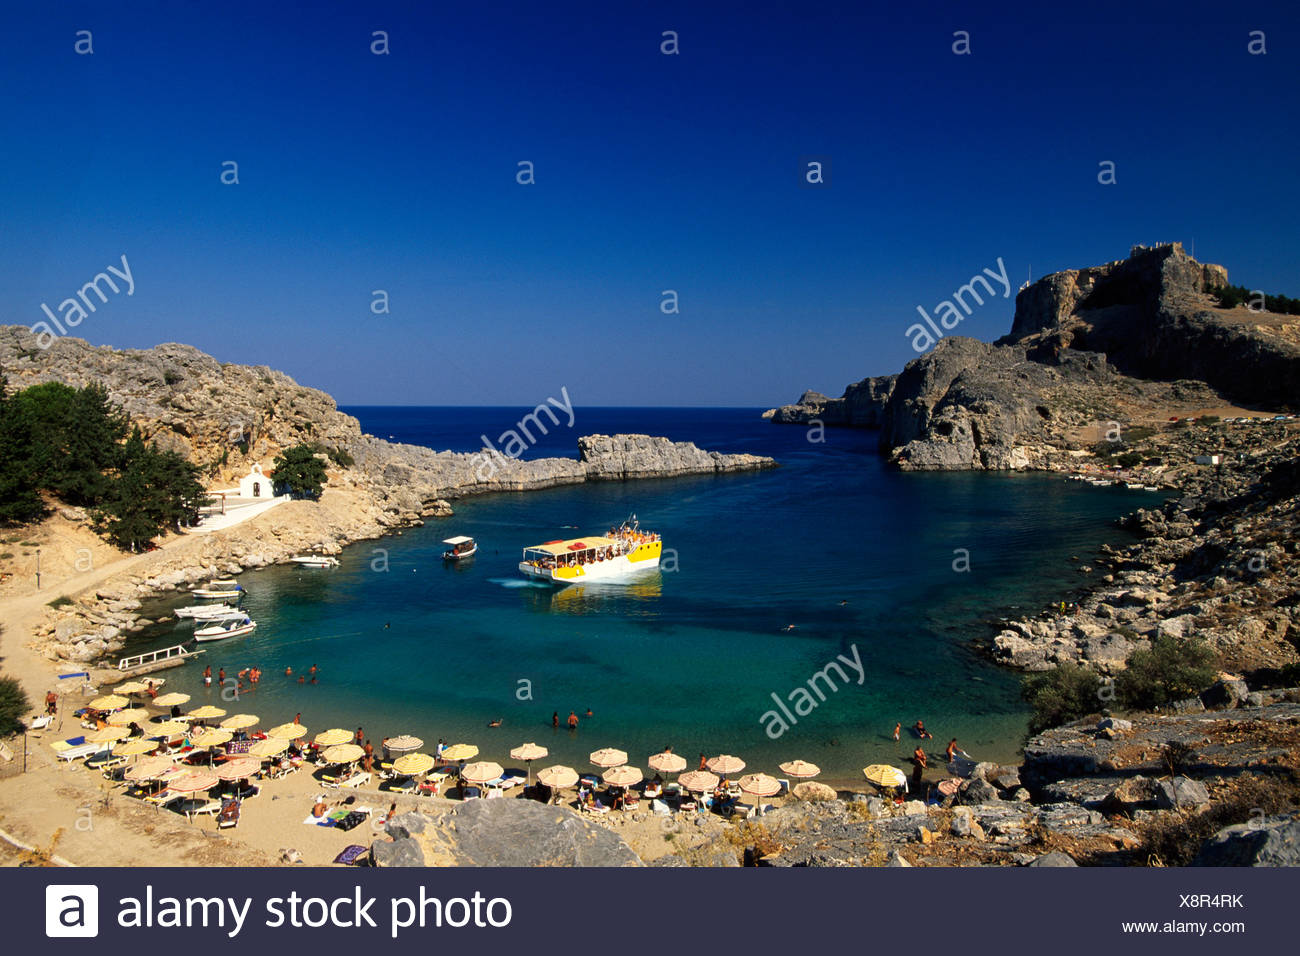 Deck chairs along a bay, Lindos, Rhodos, Dodokanes, Greece, Europe - Stock Image